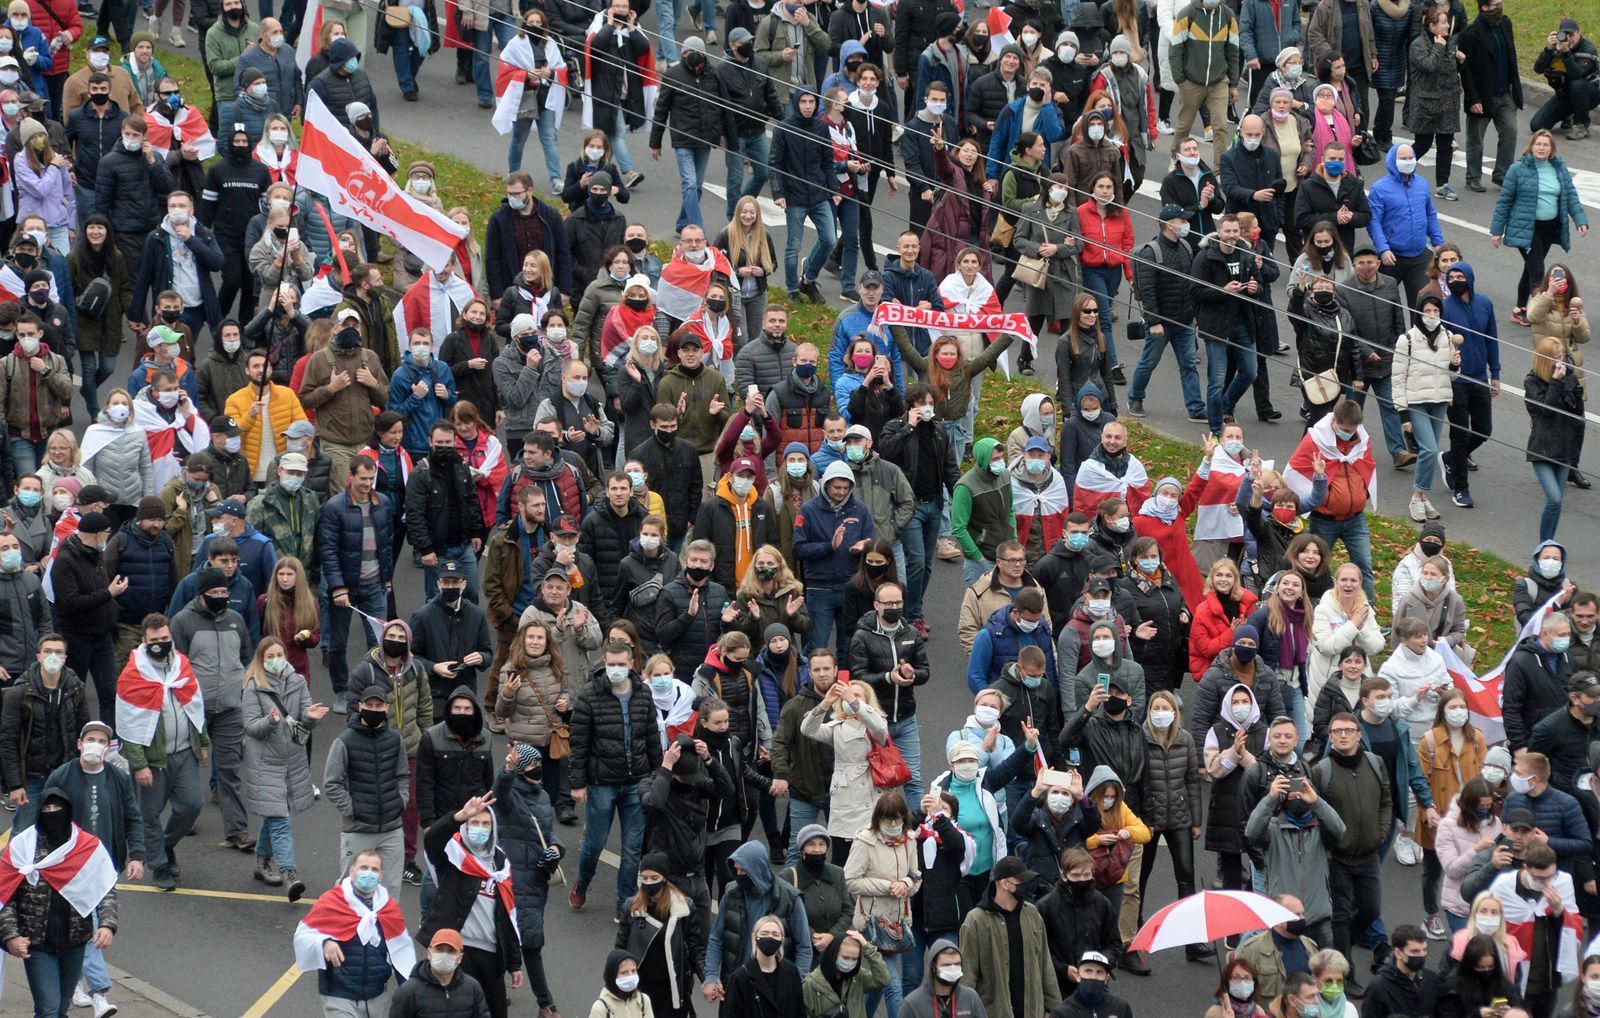 Protests against the presidential election results continue in Minsk, Belarus - 25 Oct 2020